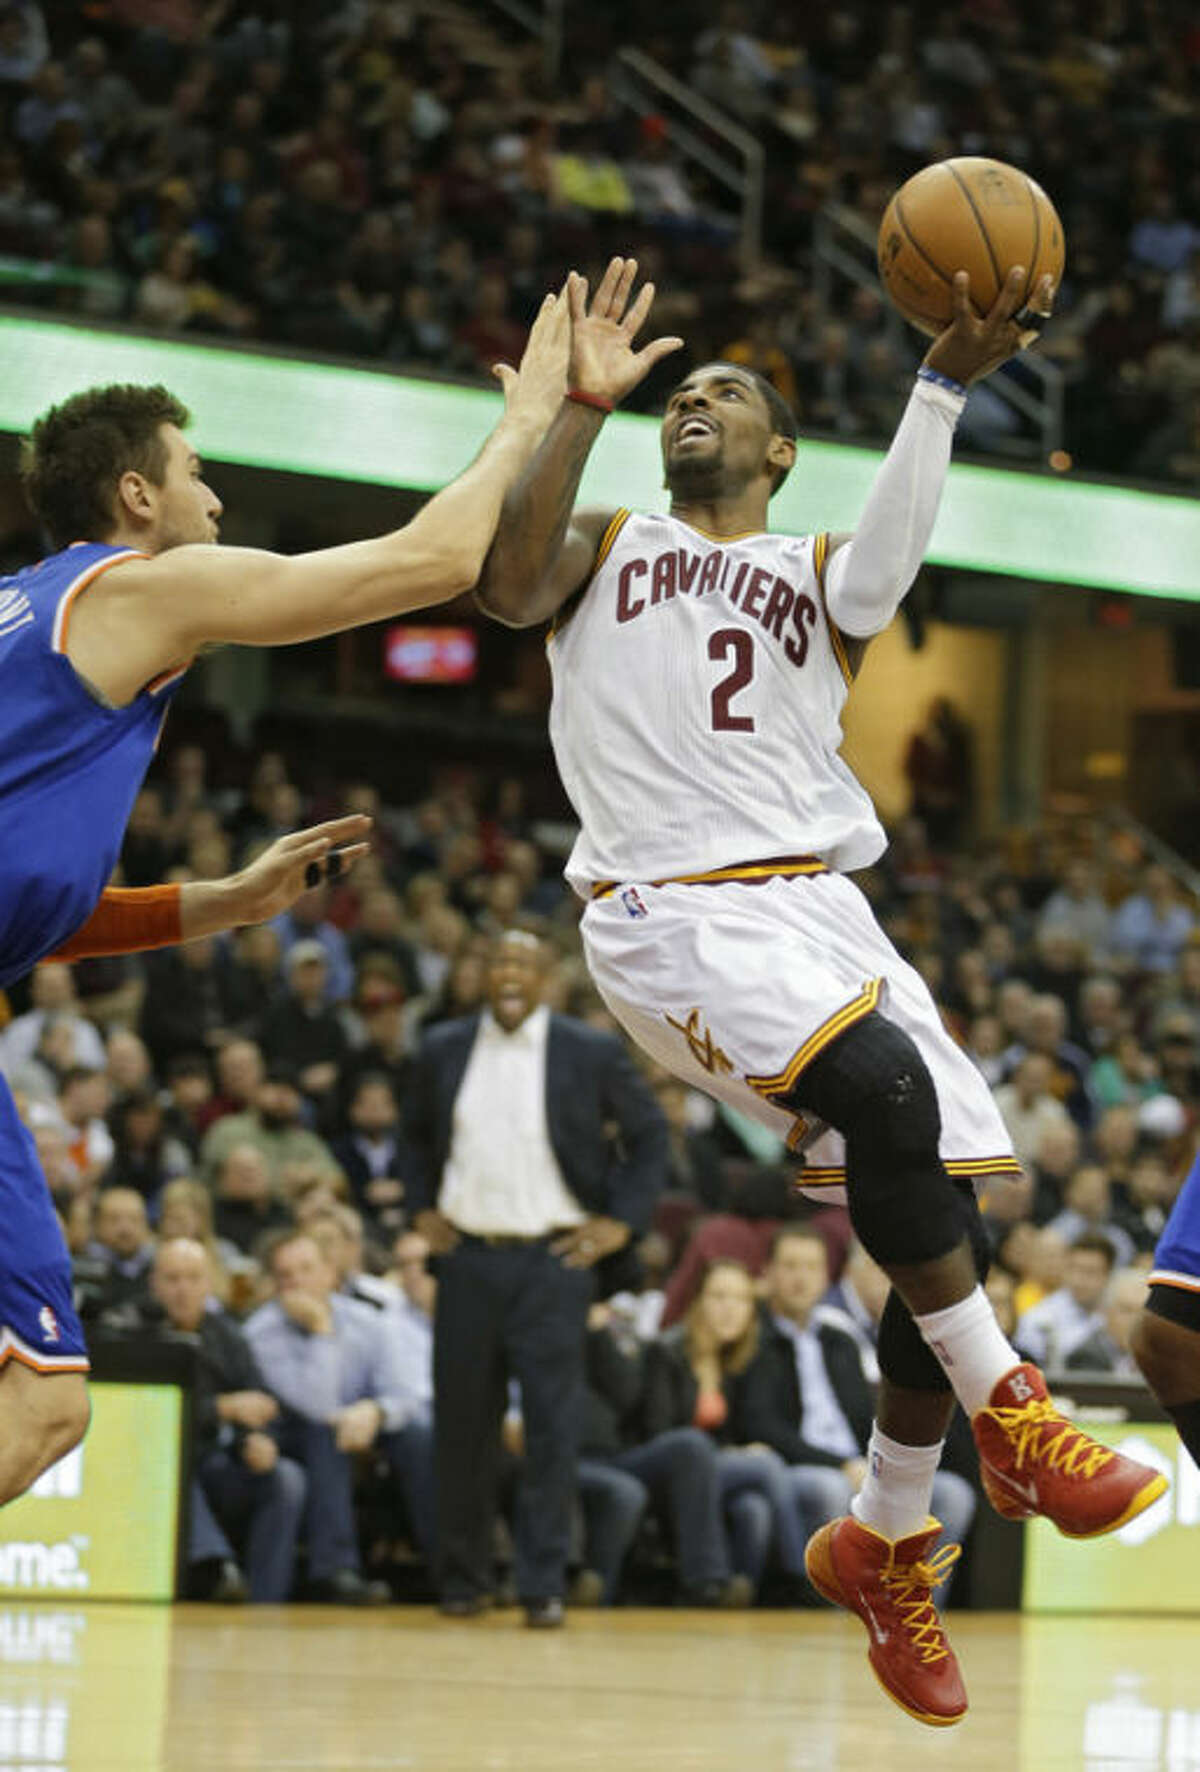 Cleveland Cavaliers' Kyrie Irving (2) shoots against New York Knicks' Andrea Bargnani, from Italy, in the second quarter of an NBA basketball game Tuesday, Dec. 10, 2013, in Cleveland. (AP Photo/Mark Duncan)